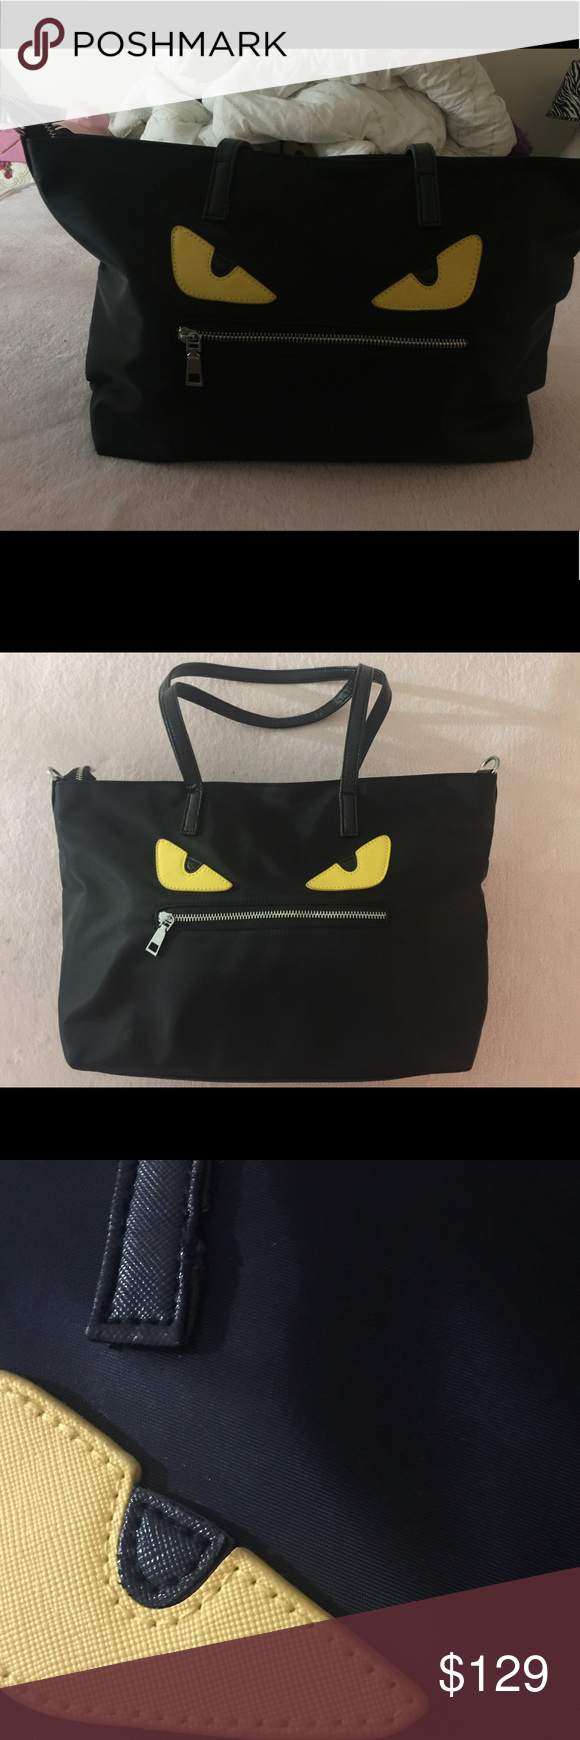 "Fendi style bag New ""Fendi "" style bag! Not the real Fendi brand! Really cute and never use! It is a gift ! Now I would like sell it for you ! Best for summer ! unbrand Bags Totes"